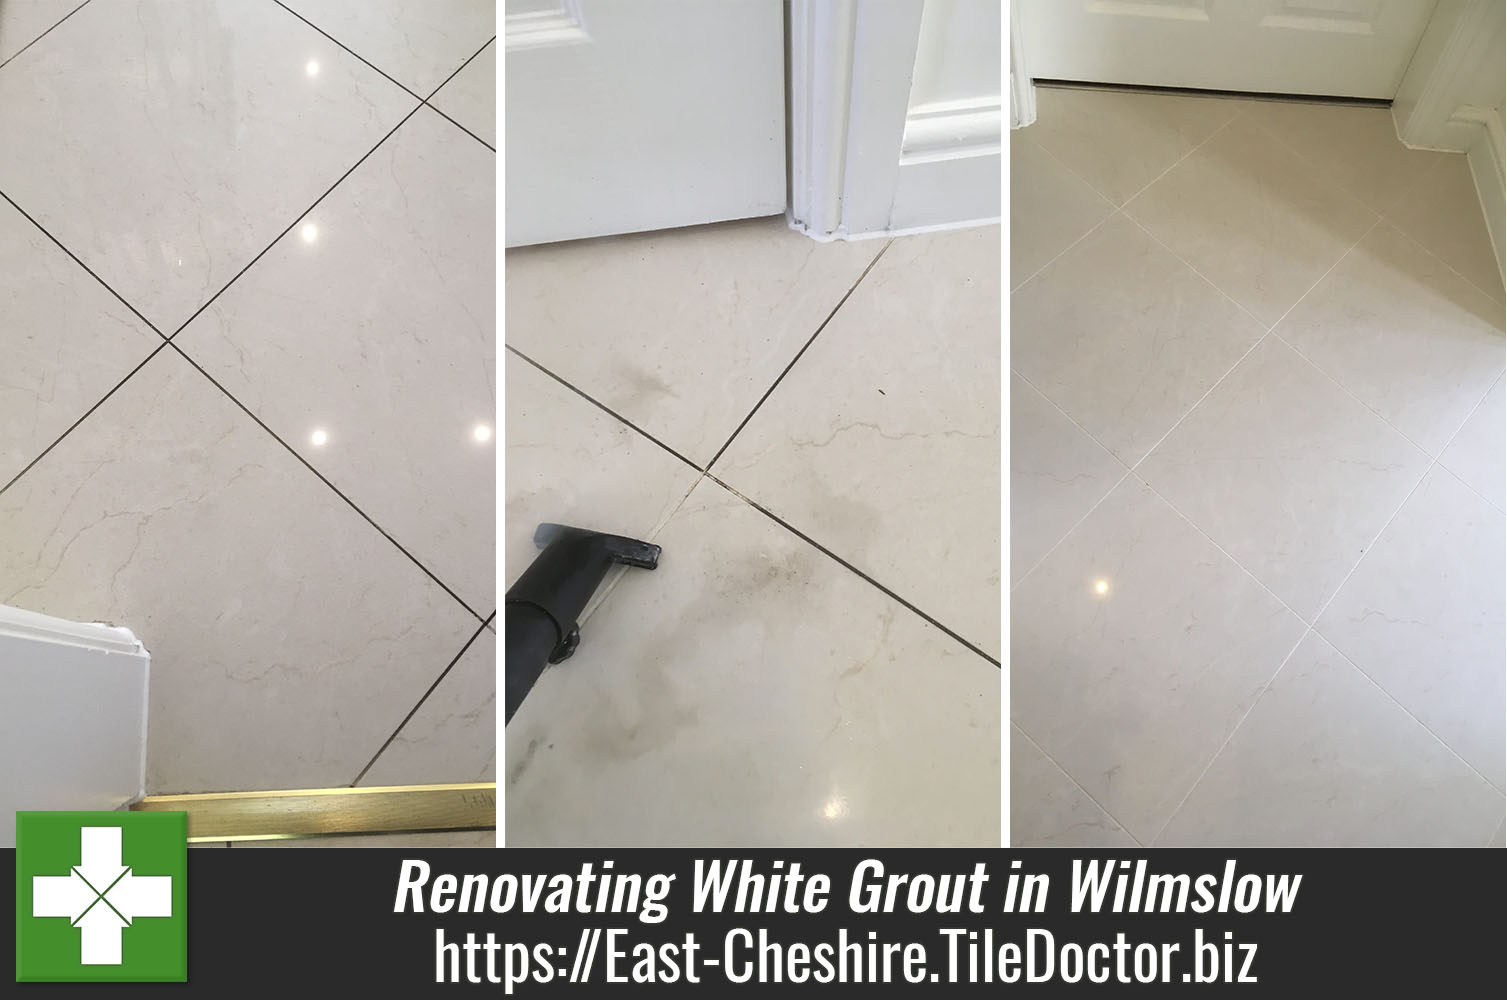 Restoring White Grout on a Ceramic Tiled Floor in Wilmslow